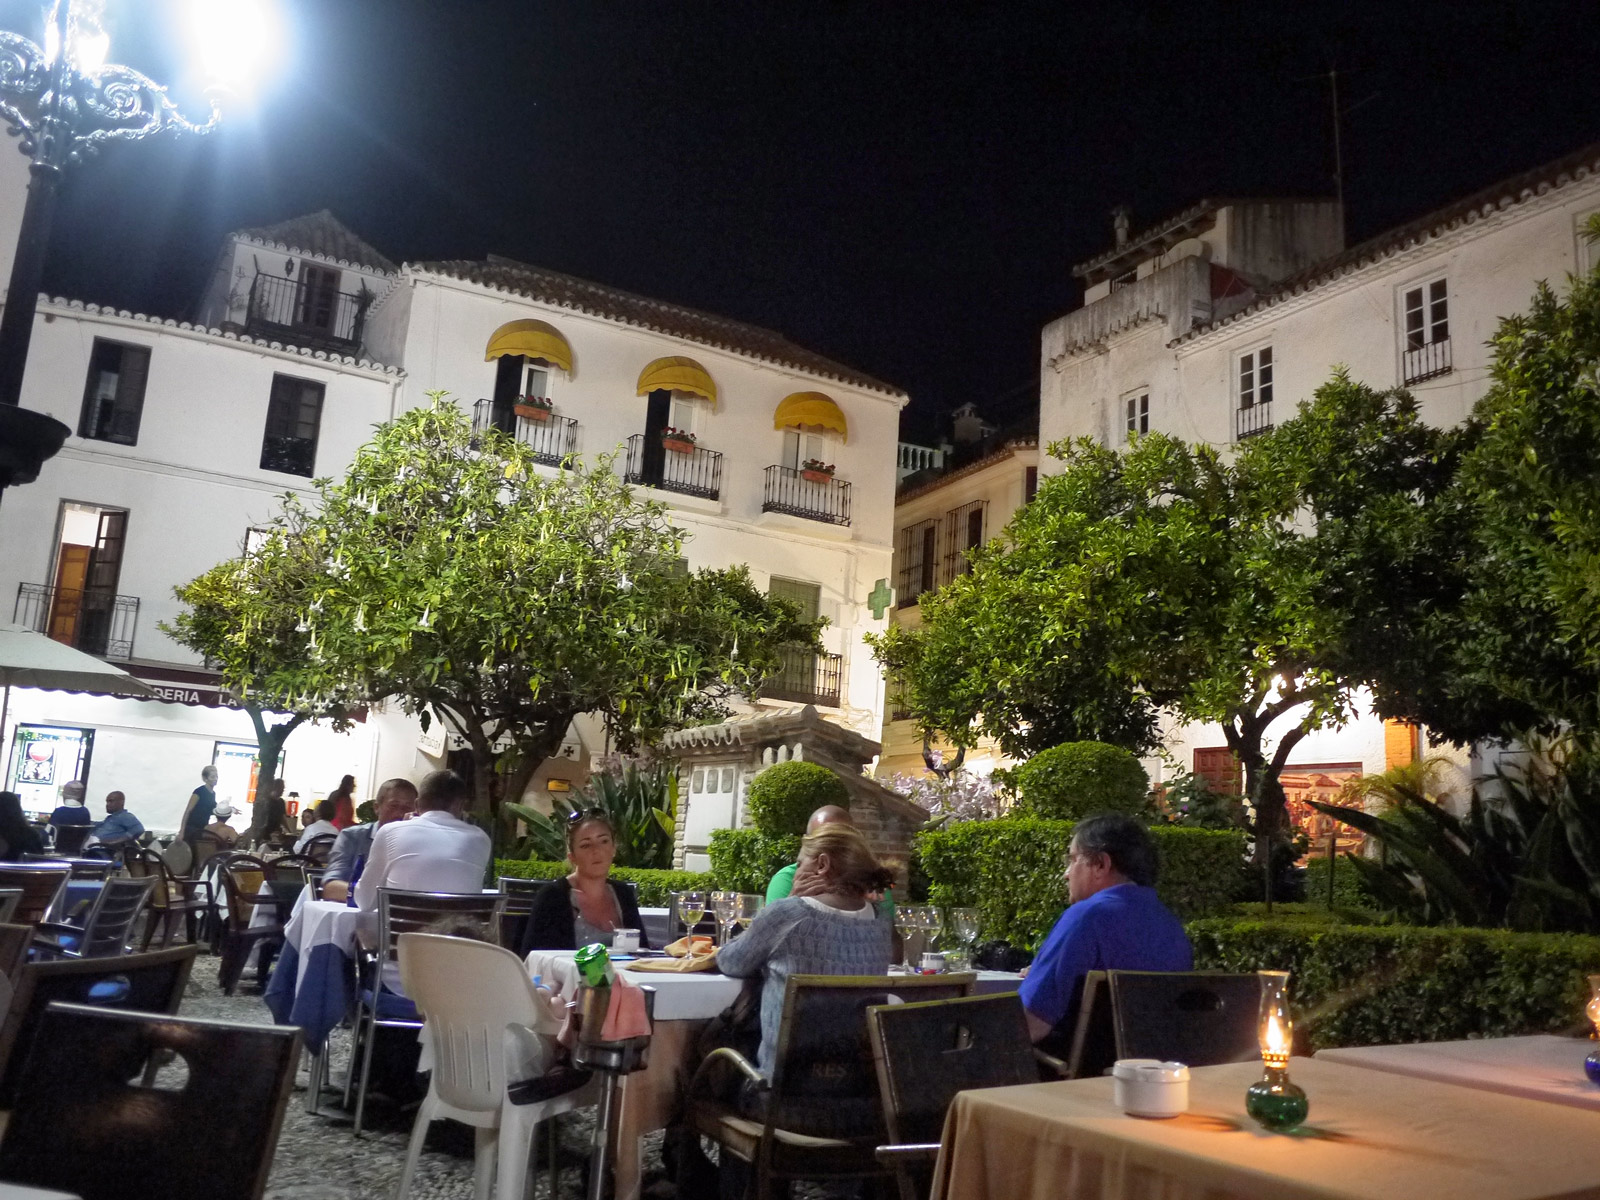 Dinner Under the Stars in Orange Square - Marbella, Spain